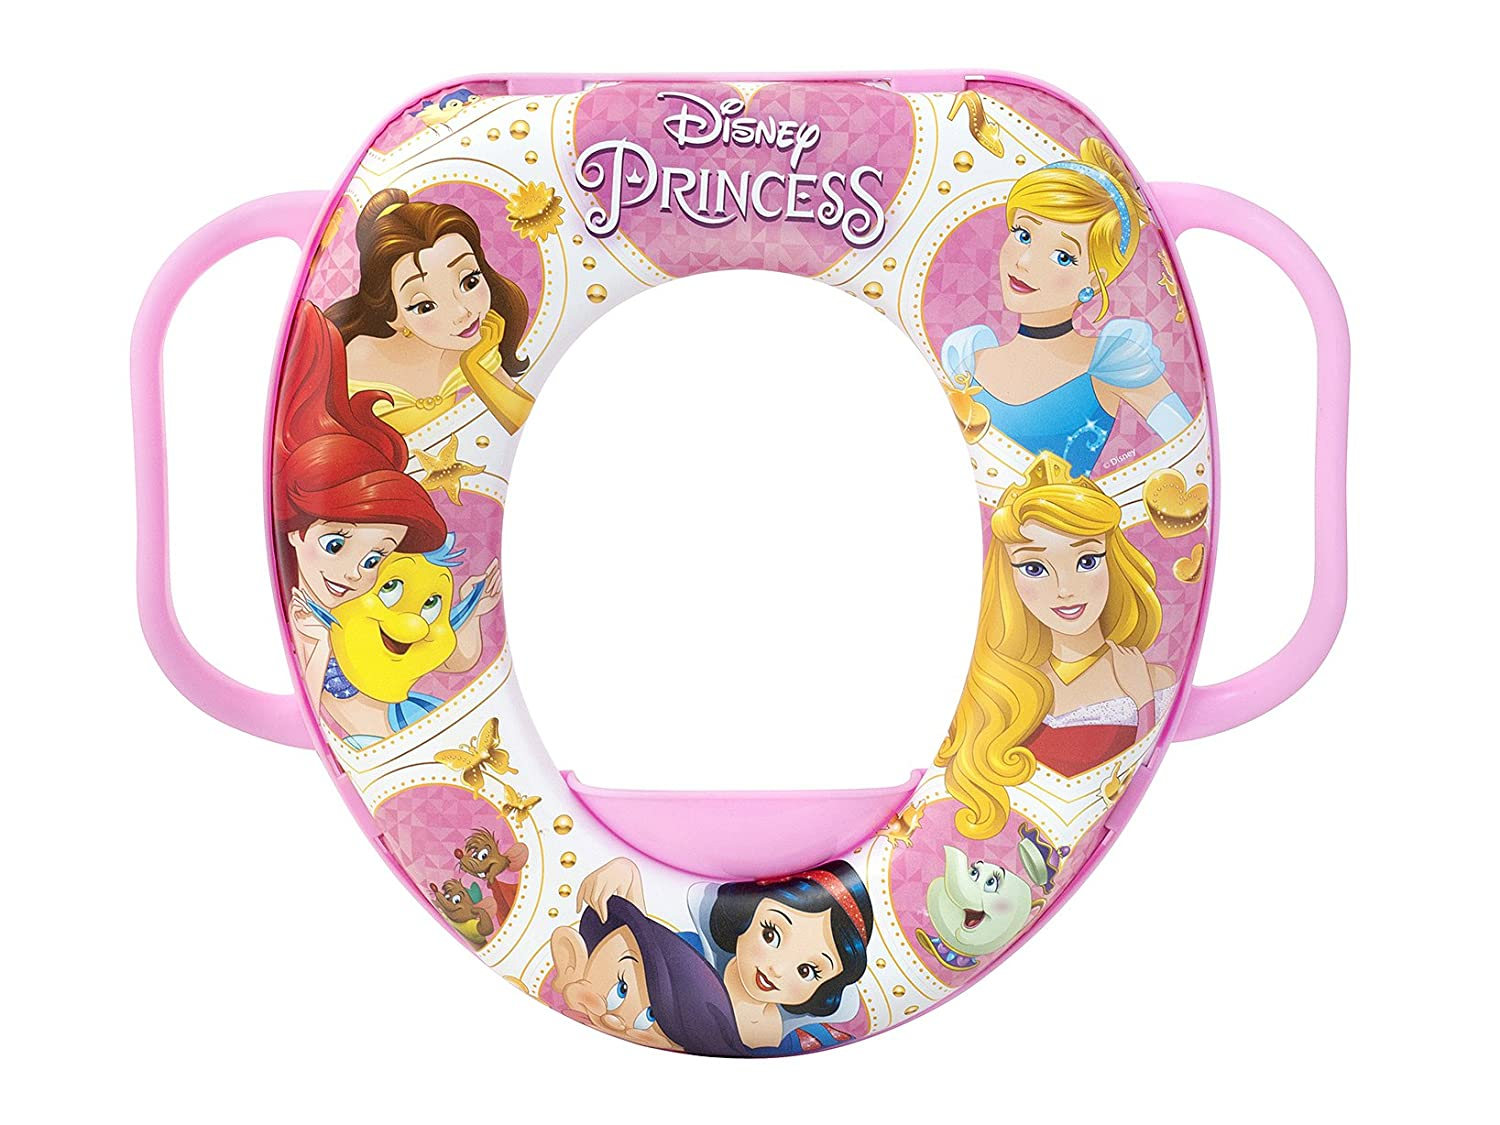 lulabi 7994 Disney Princess réducteur WC Soft, multicolore 5700